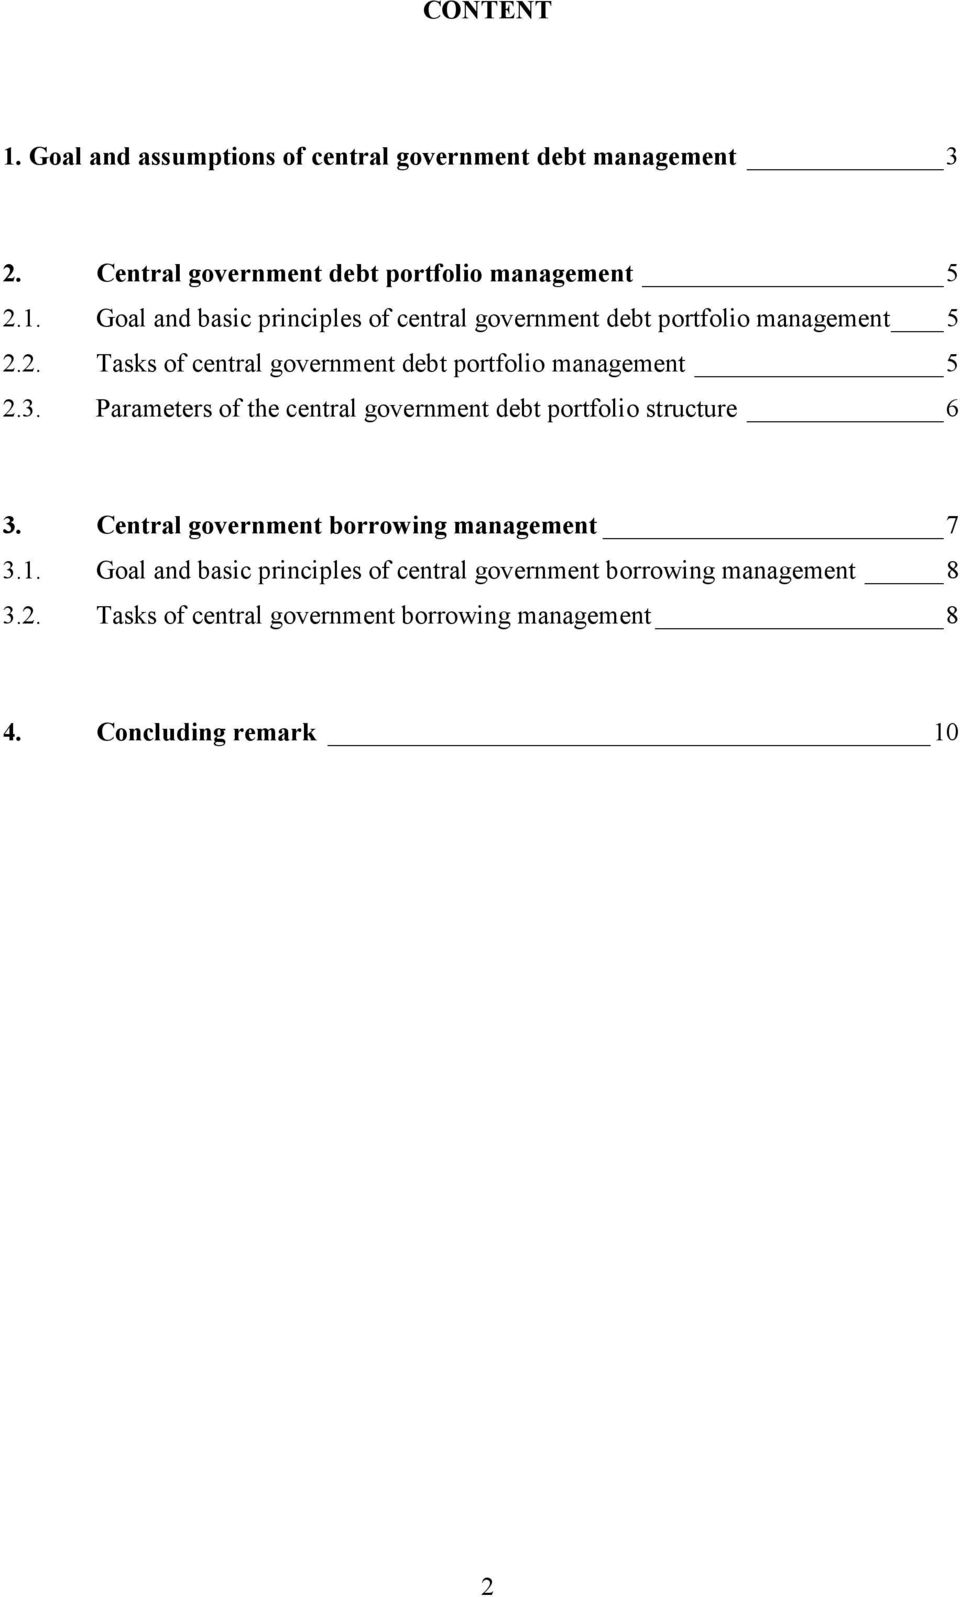 Central government borrowing management 7 3.1. Goal and basic principles of central government borrowing management 8 3.2.